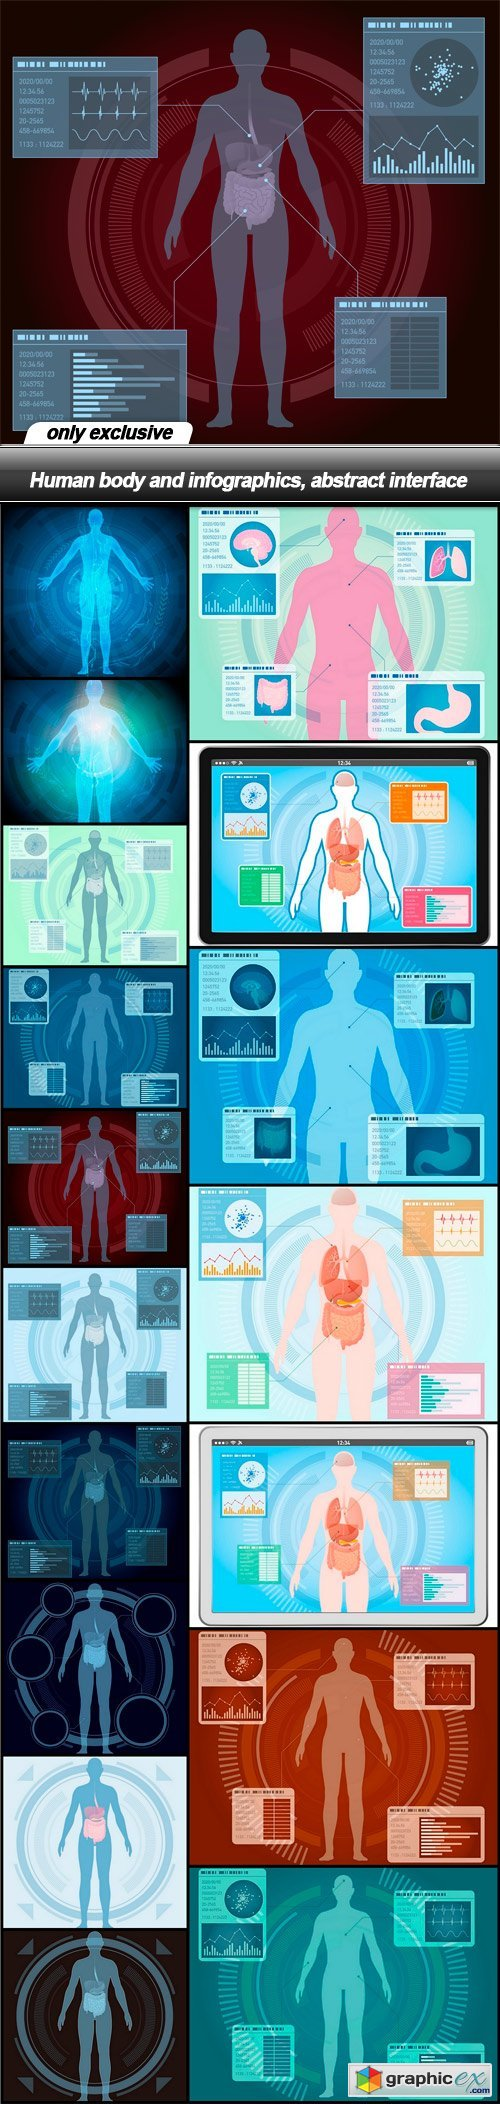 Human body and infographics, abstract interface - 17 EPS